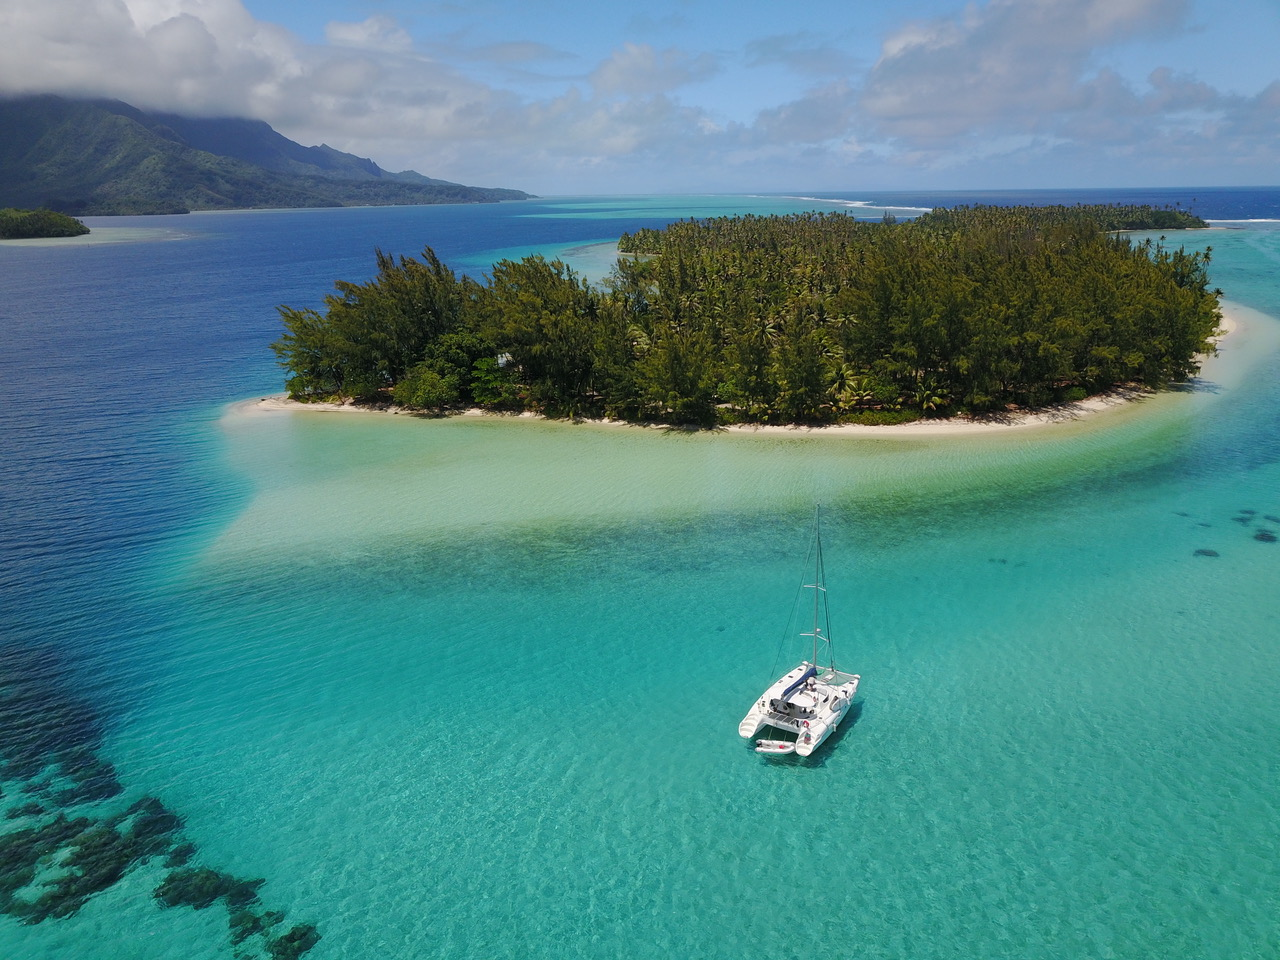 https://tahititourisme.ca/wp-content/uploads/2019/06/HEREVAI-CHARTER.jpeg